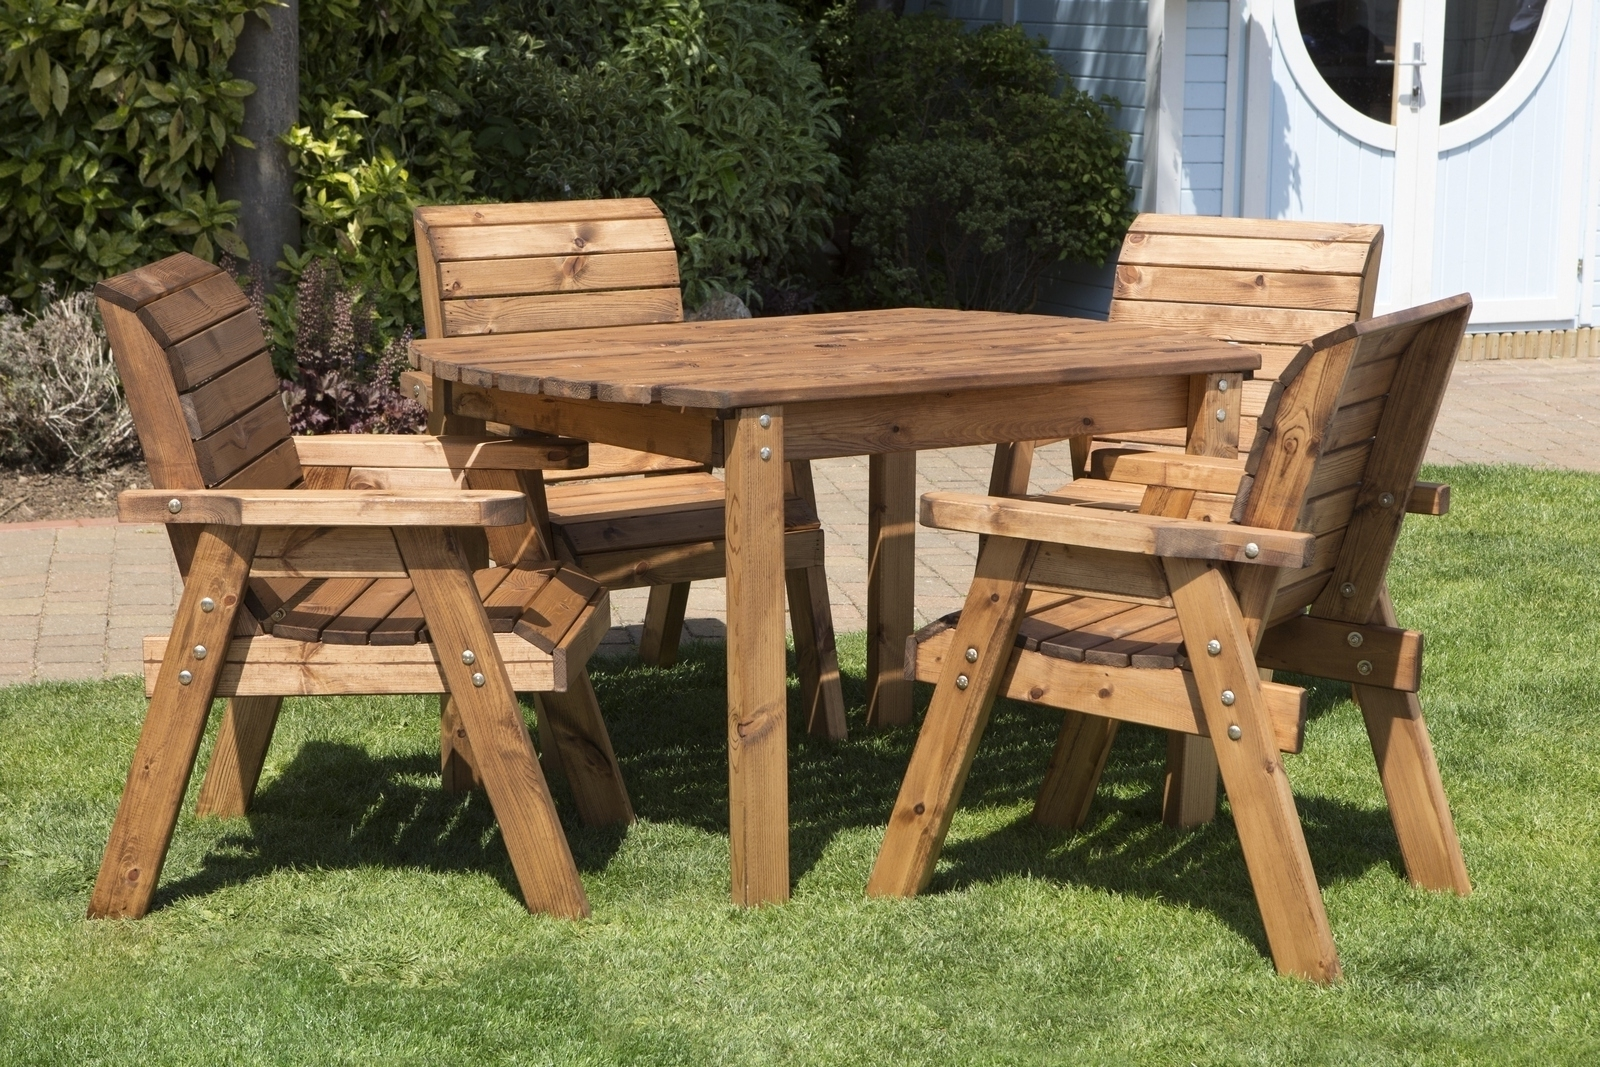 Uk Made Fully Assembled Heavy Duty Wooden Patio Garden Dining Set Throughout 2017 Garden Dining Tables (View 25 of 25)